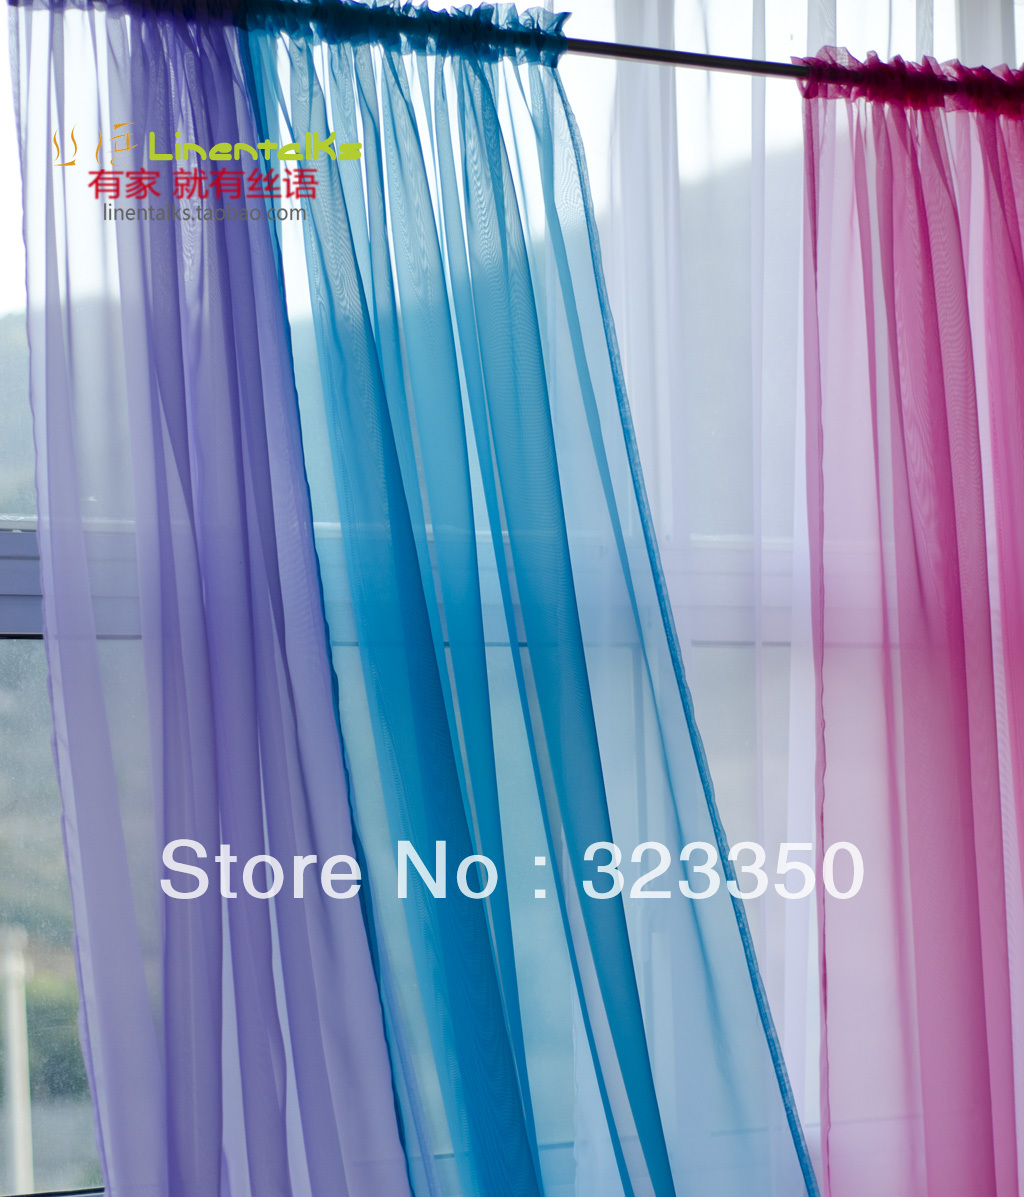 free shipping,ready made gauze curtain,rod pocket voile curtain,string curtian.1.4m*2.5m,4 pieces a lot(China (Mainland))